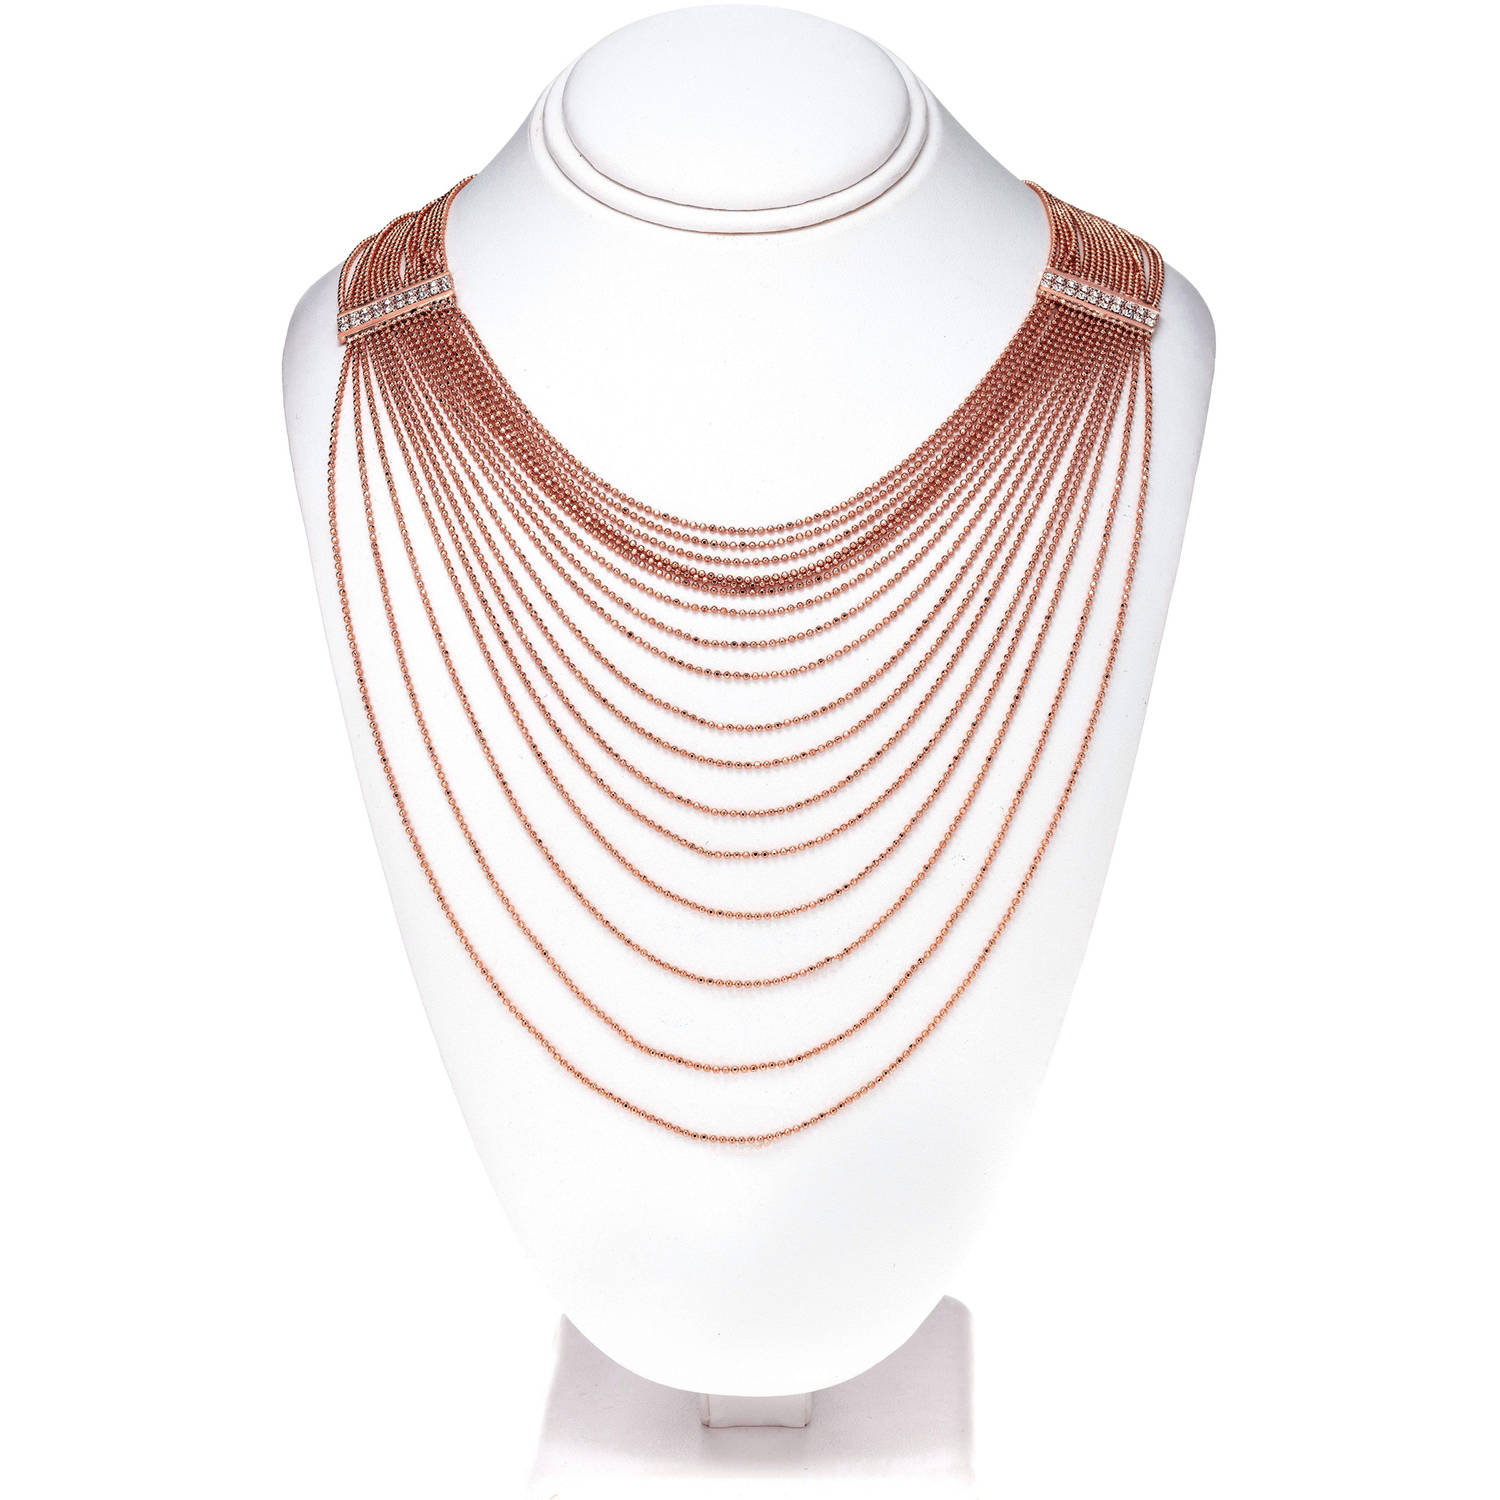 X & O Handset Austrian Crystal 14kt Rose Gold-Plated Rectangle Drape Chain